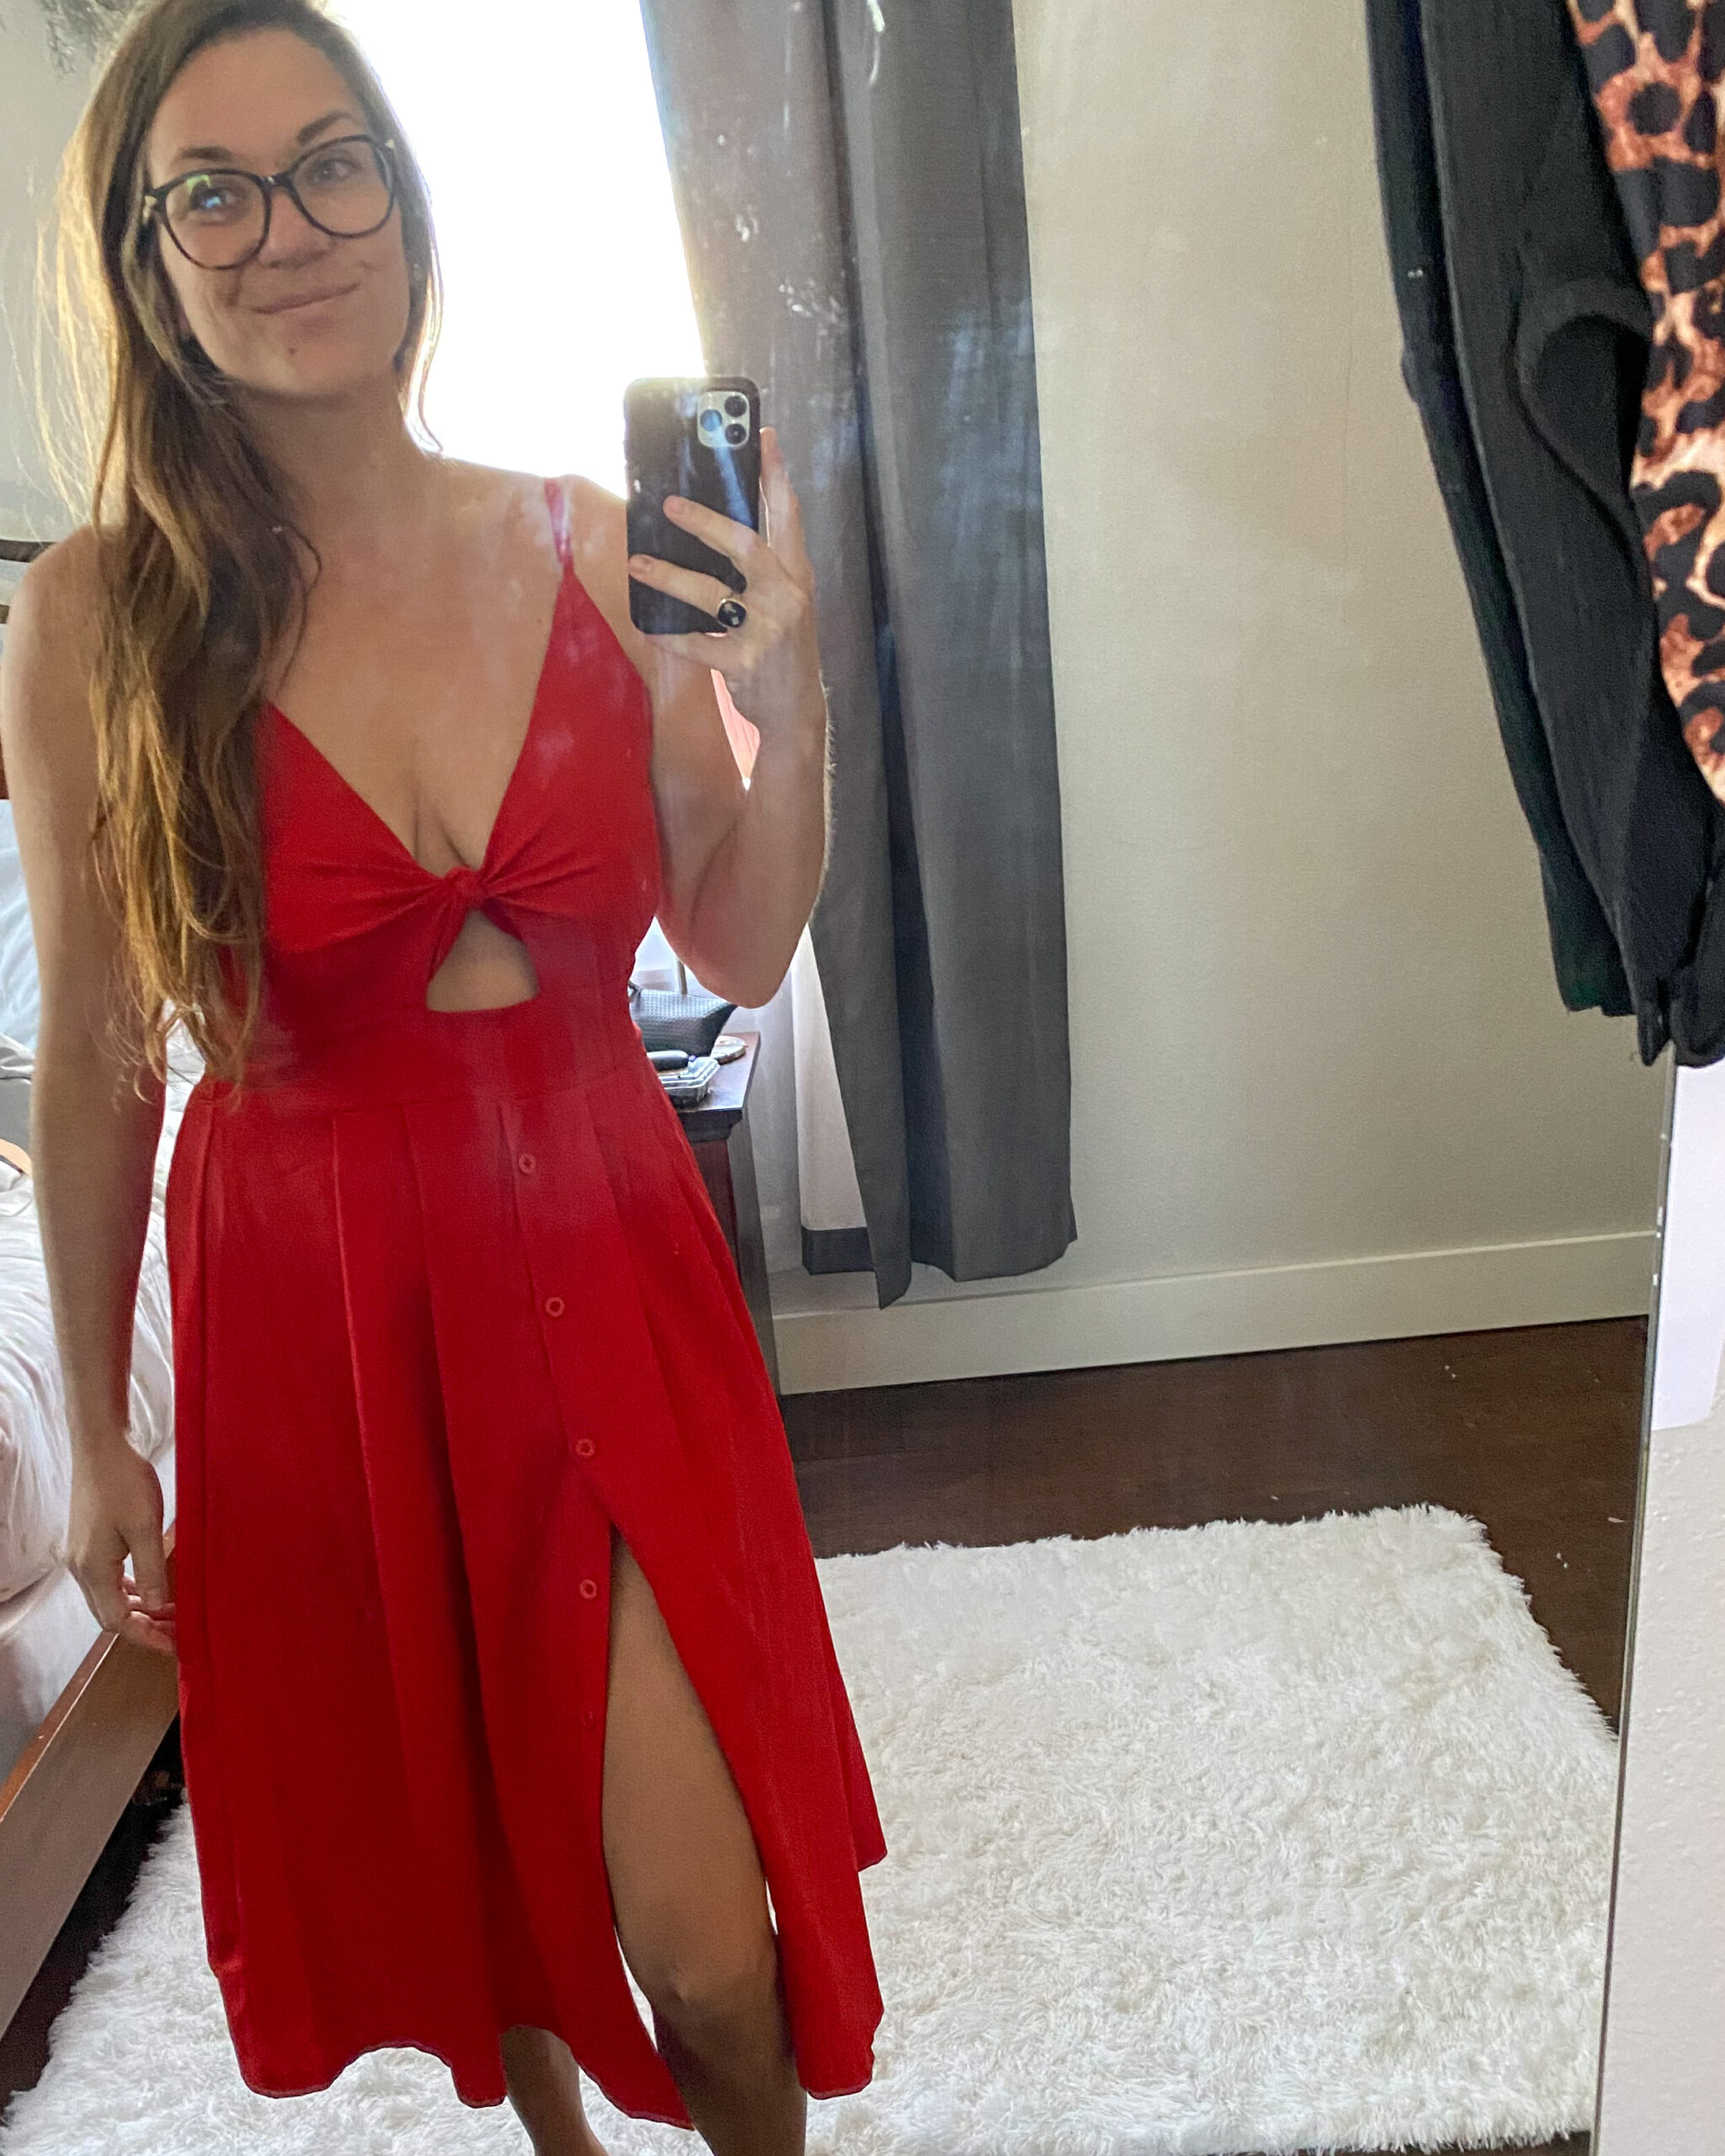 photo of a girl in a red dress text how to tape big boobs